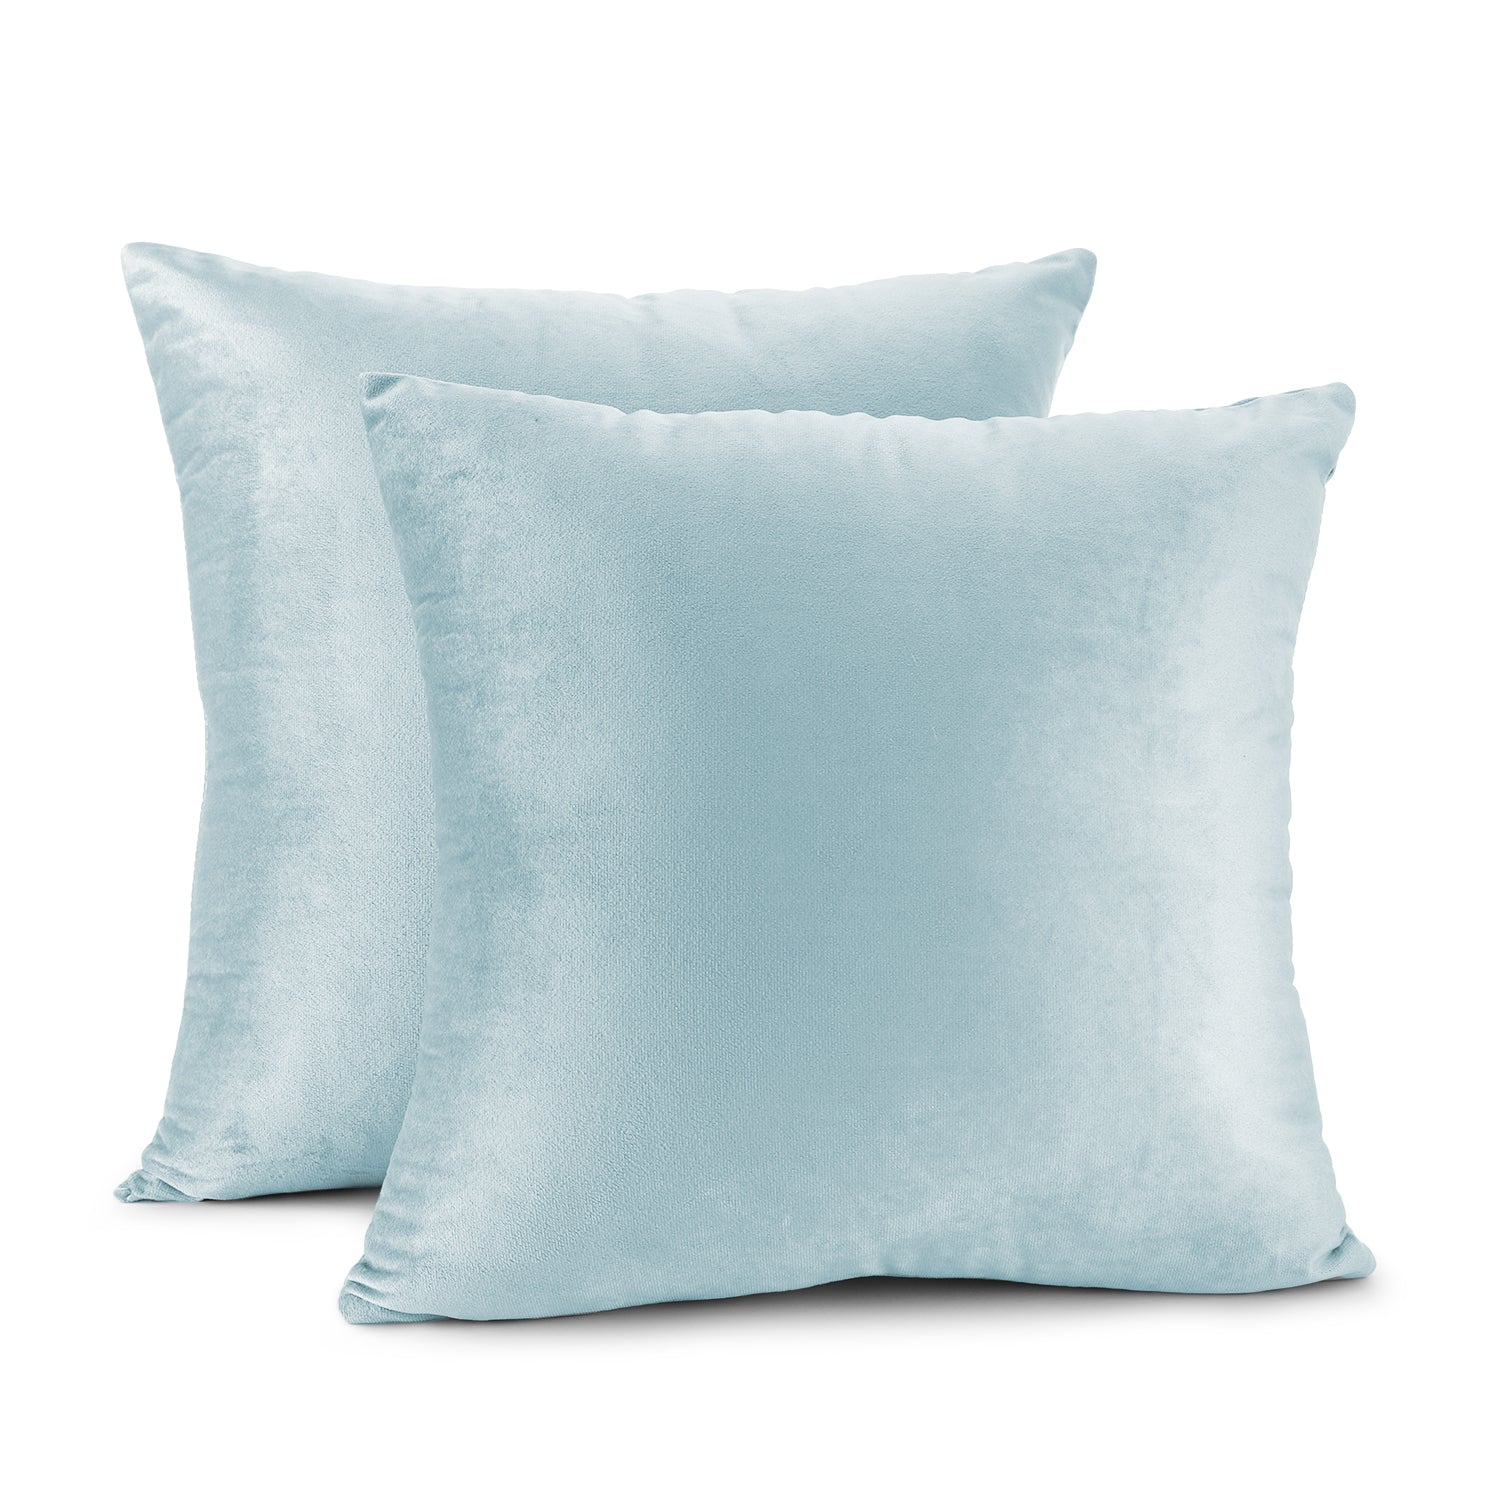 Nestl Bedding Throw Pillow Covers, Cozy Velvet Decorative Outdoor Pillow Covers 24x24 & 26x26 Inches, Soft Solid Cushion Covers for Sofa, Bed and Car, Set of 2